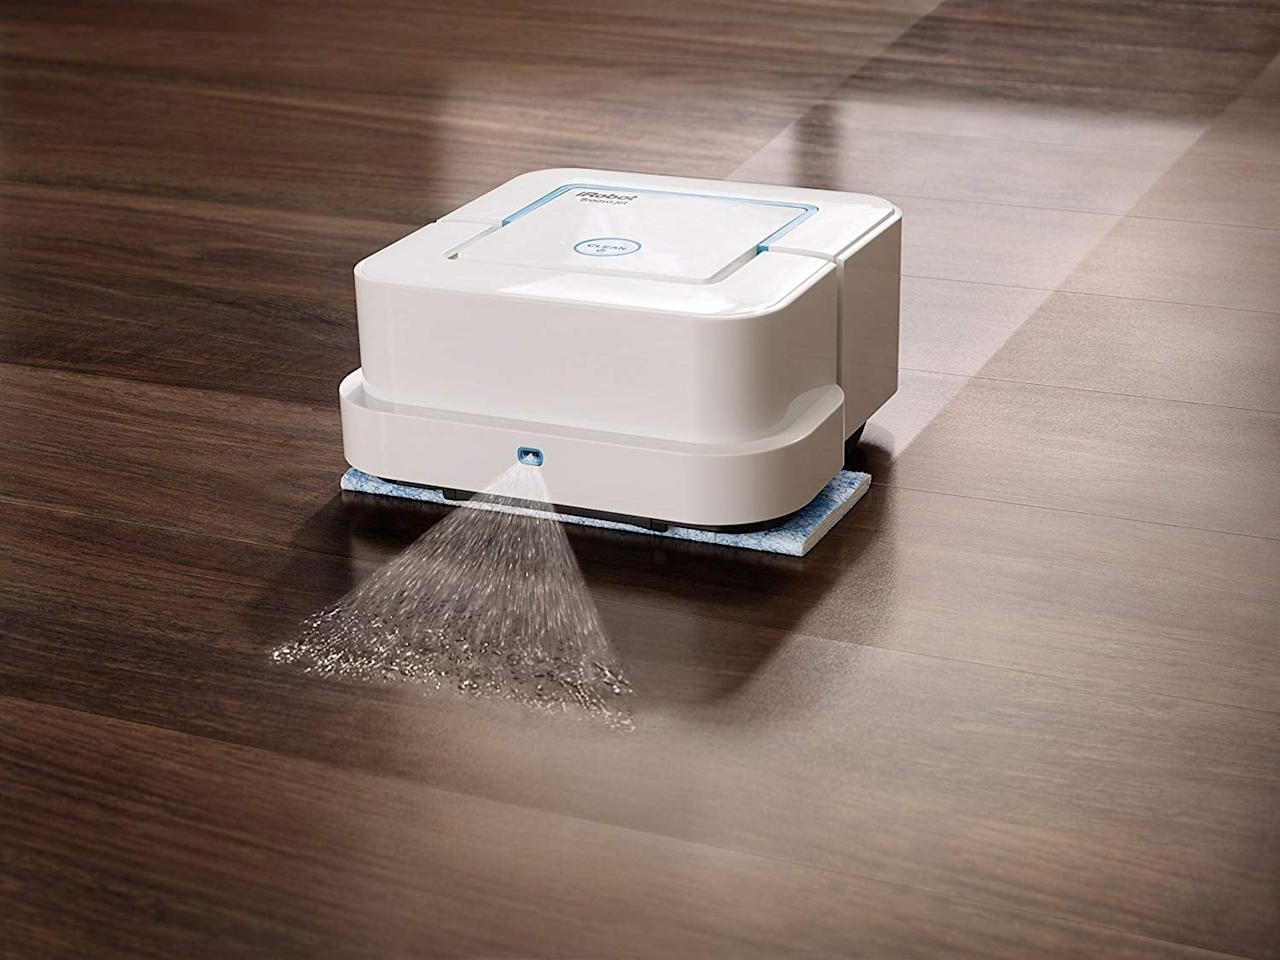 """<p>If you're a fan of the <a href=""""https://www.popsugar.com/family/Amazon-Prime-Day-Roomba-Vacuum-Sale-2018-45058517"""" class=""""ga-track"""" data-ga-category=""""internal click"""" data-ga-label=""""https://www.popsugar.com/moms/Amazon-Prime-Day-Roomba-Vacuum-Sale-2018-45058517"""" data-ga-action=""""body text link"""">iRobot vacuum</a>, then you'll want to give this <product href=""""https://www.amazon.com/iRobot-Braava-jet-240-Robot/dp/B019OH9898?ref_=bl_dp_s_web_2594102011"""" target=""""_blank"""" class=""""ga-track"""" data-ga-category=""""internal click"""" data-ga-label=""""https://www.amazon.com/iRobot-Braava-jet-240-Robot/dp/B019OH9898?ref_=bl_dp_s_web_2594102011"""" data-ga-action=""""body text link"""">iRobot Braava Jet 240 Robot Mop</product> ($180, originally $199) a try. It will clean your floors when you're not around, so you have nothing to worry about later.</p>"""